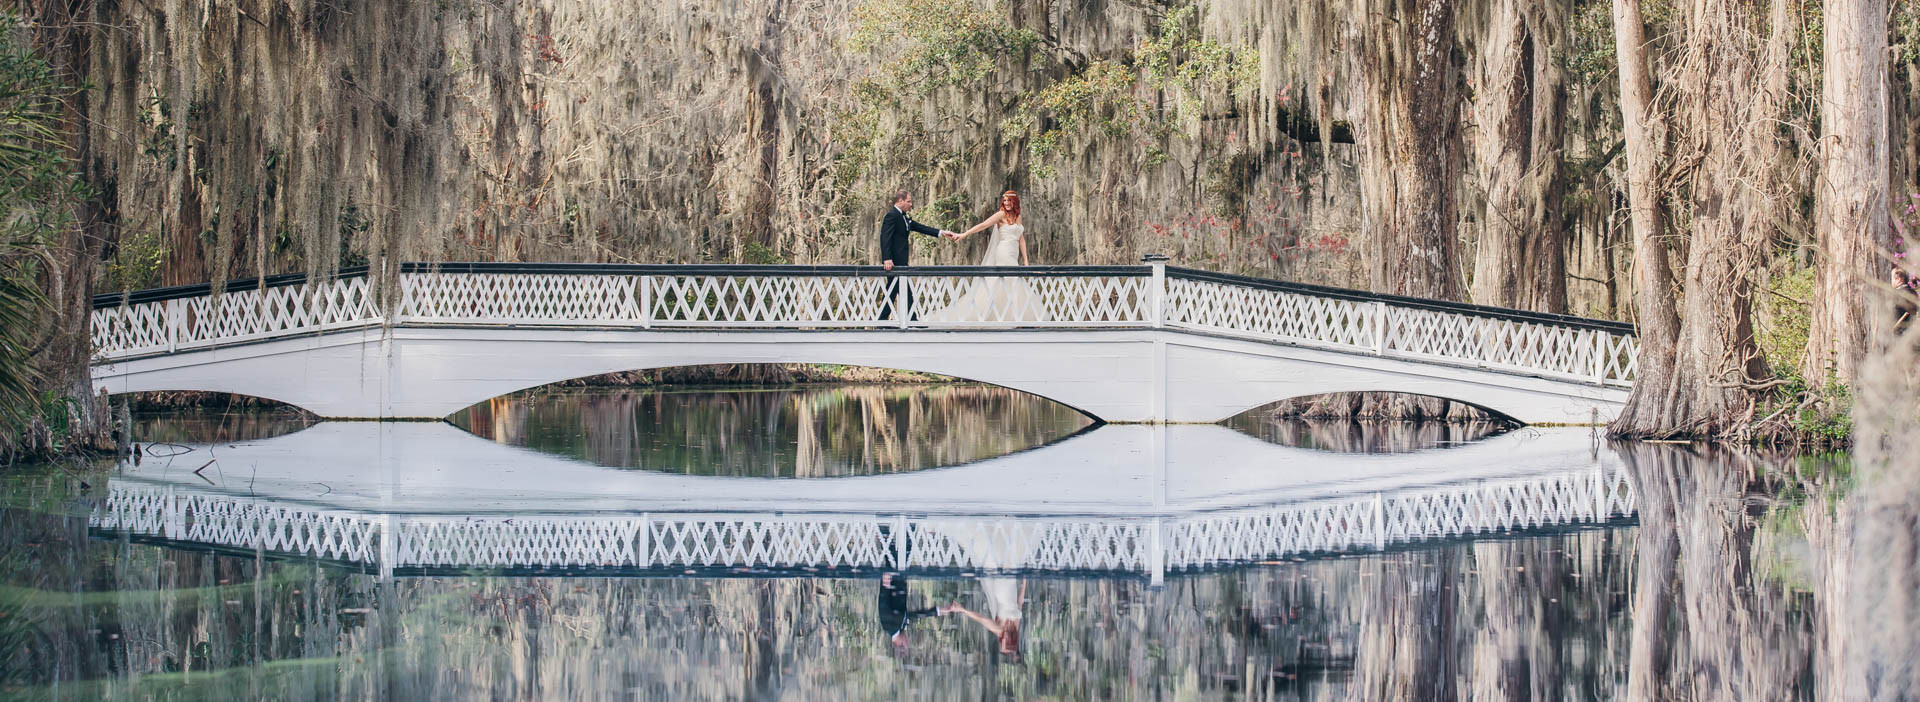 Wedding Photography at Magnolia Plantation